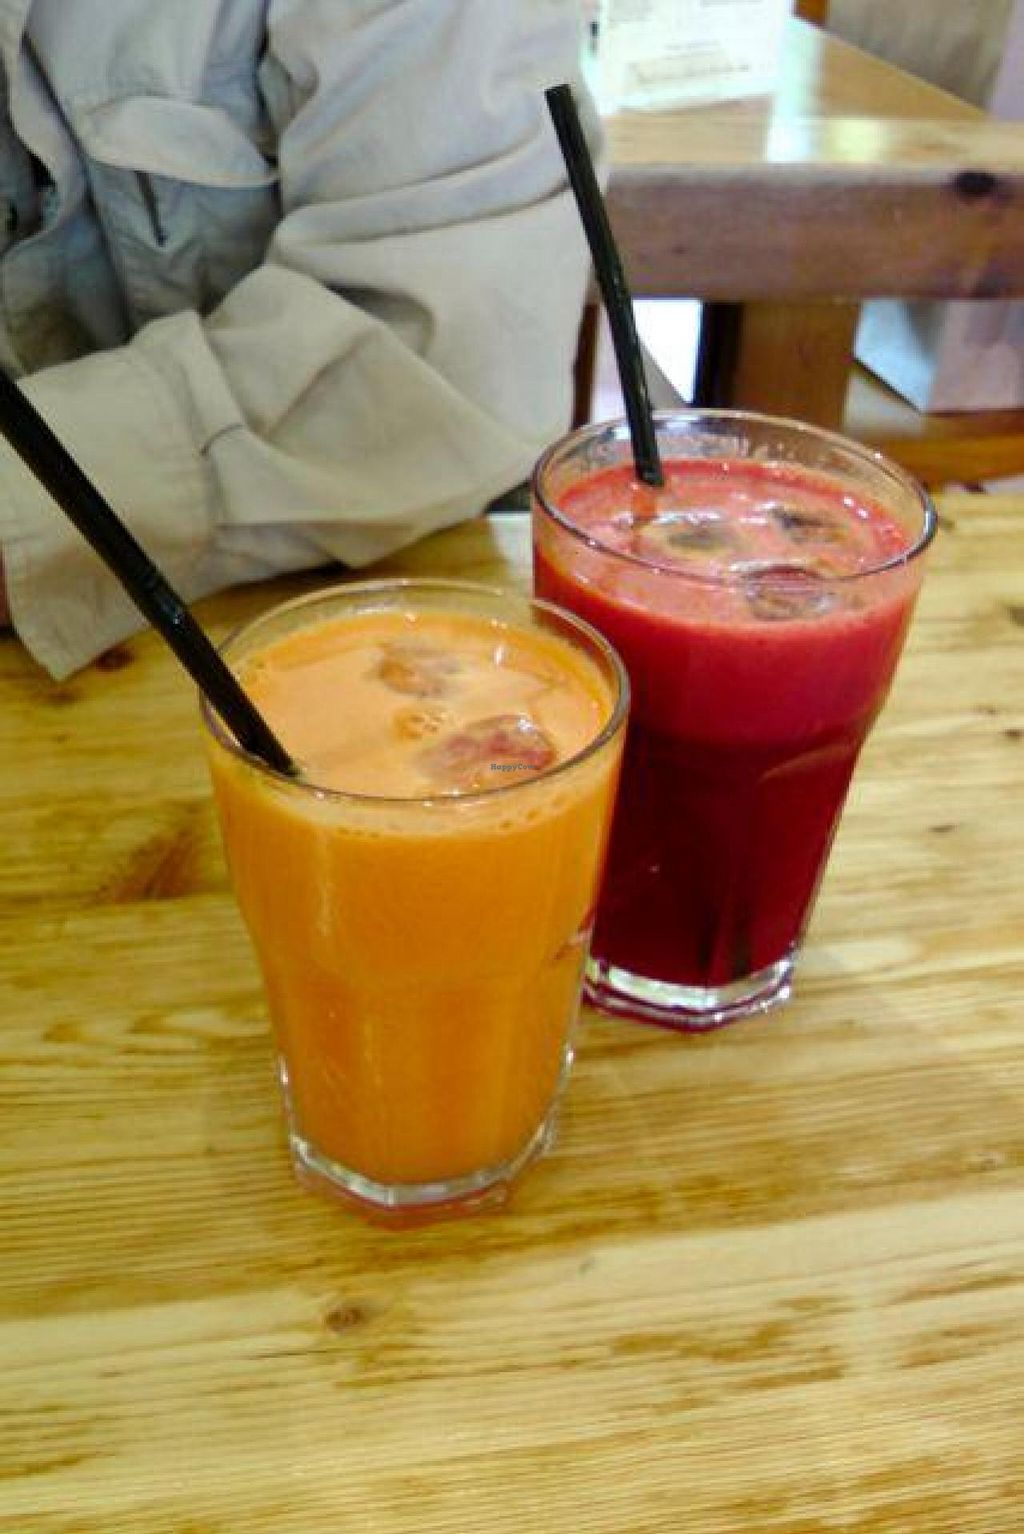 "Photo of Iydea Vegetarian Kitchen  by <a href=""/members/profile/trinitybourne"">trinitybourne</a> <br/>Delicious fresh veggie juices <br/> September 24, 2014  - <a href='/contact/abuse/image/8752/80934'>Report</a>"